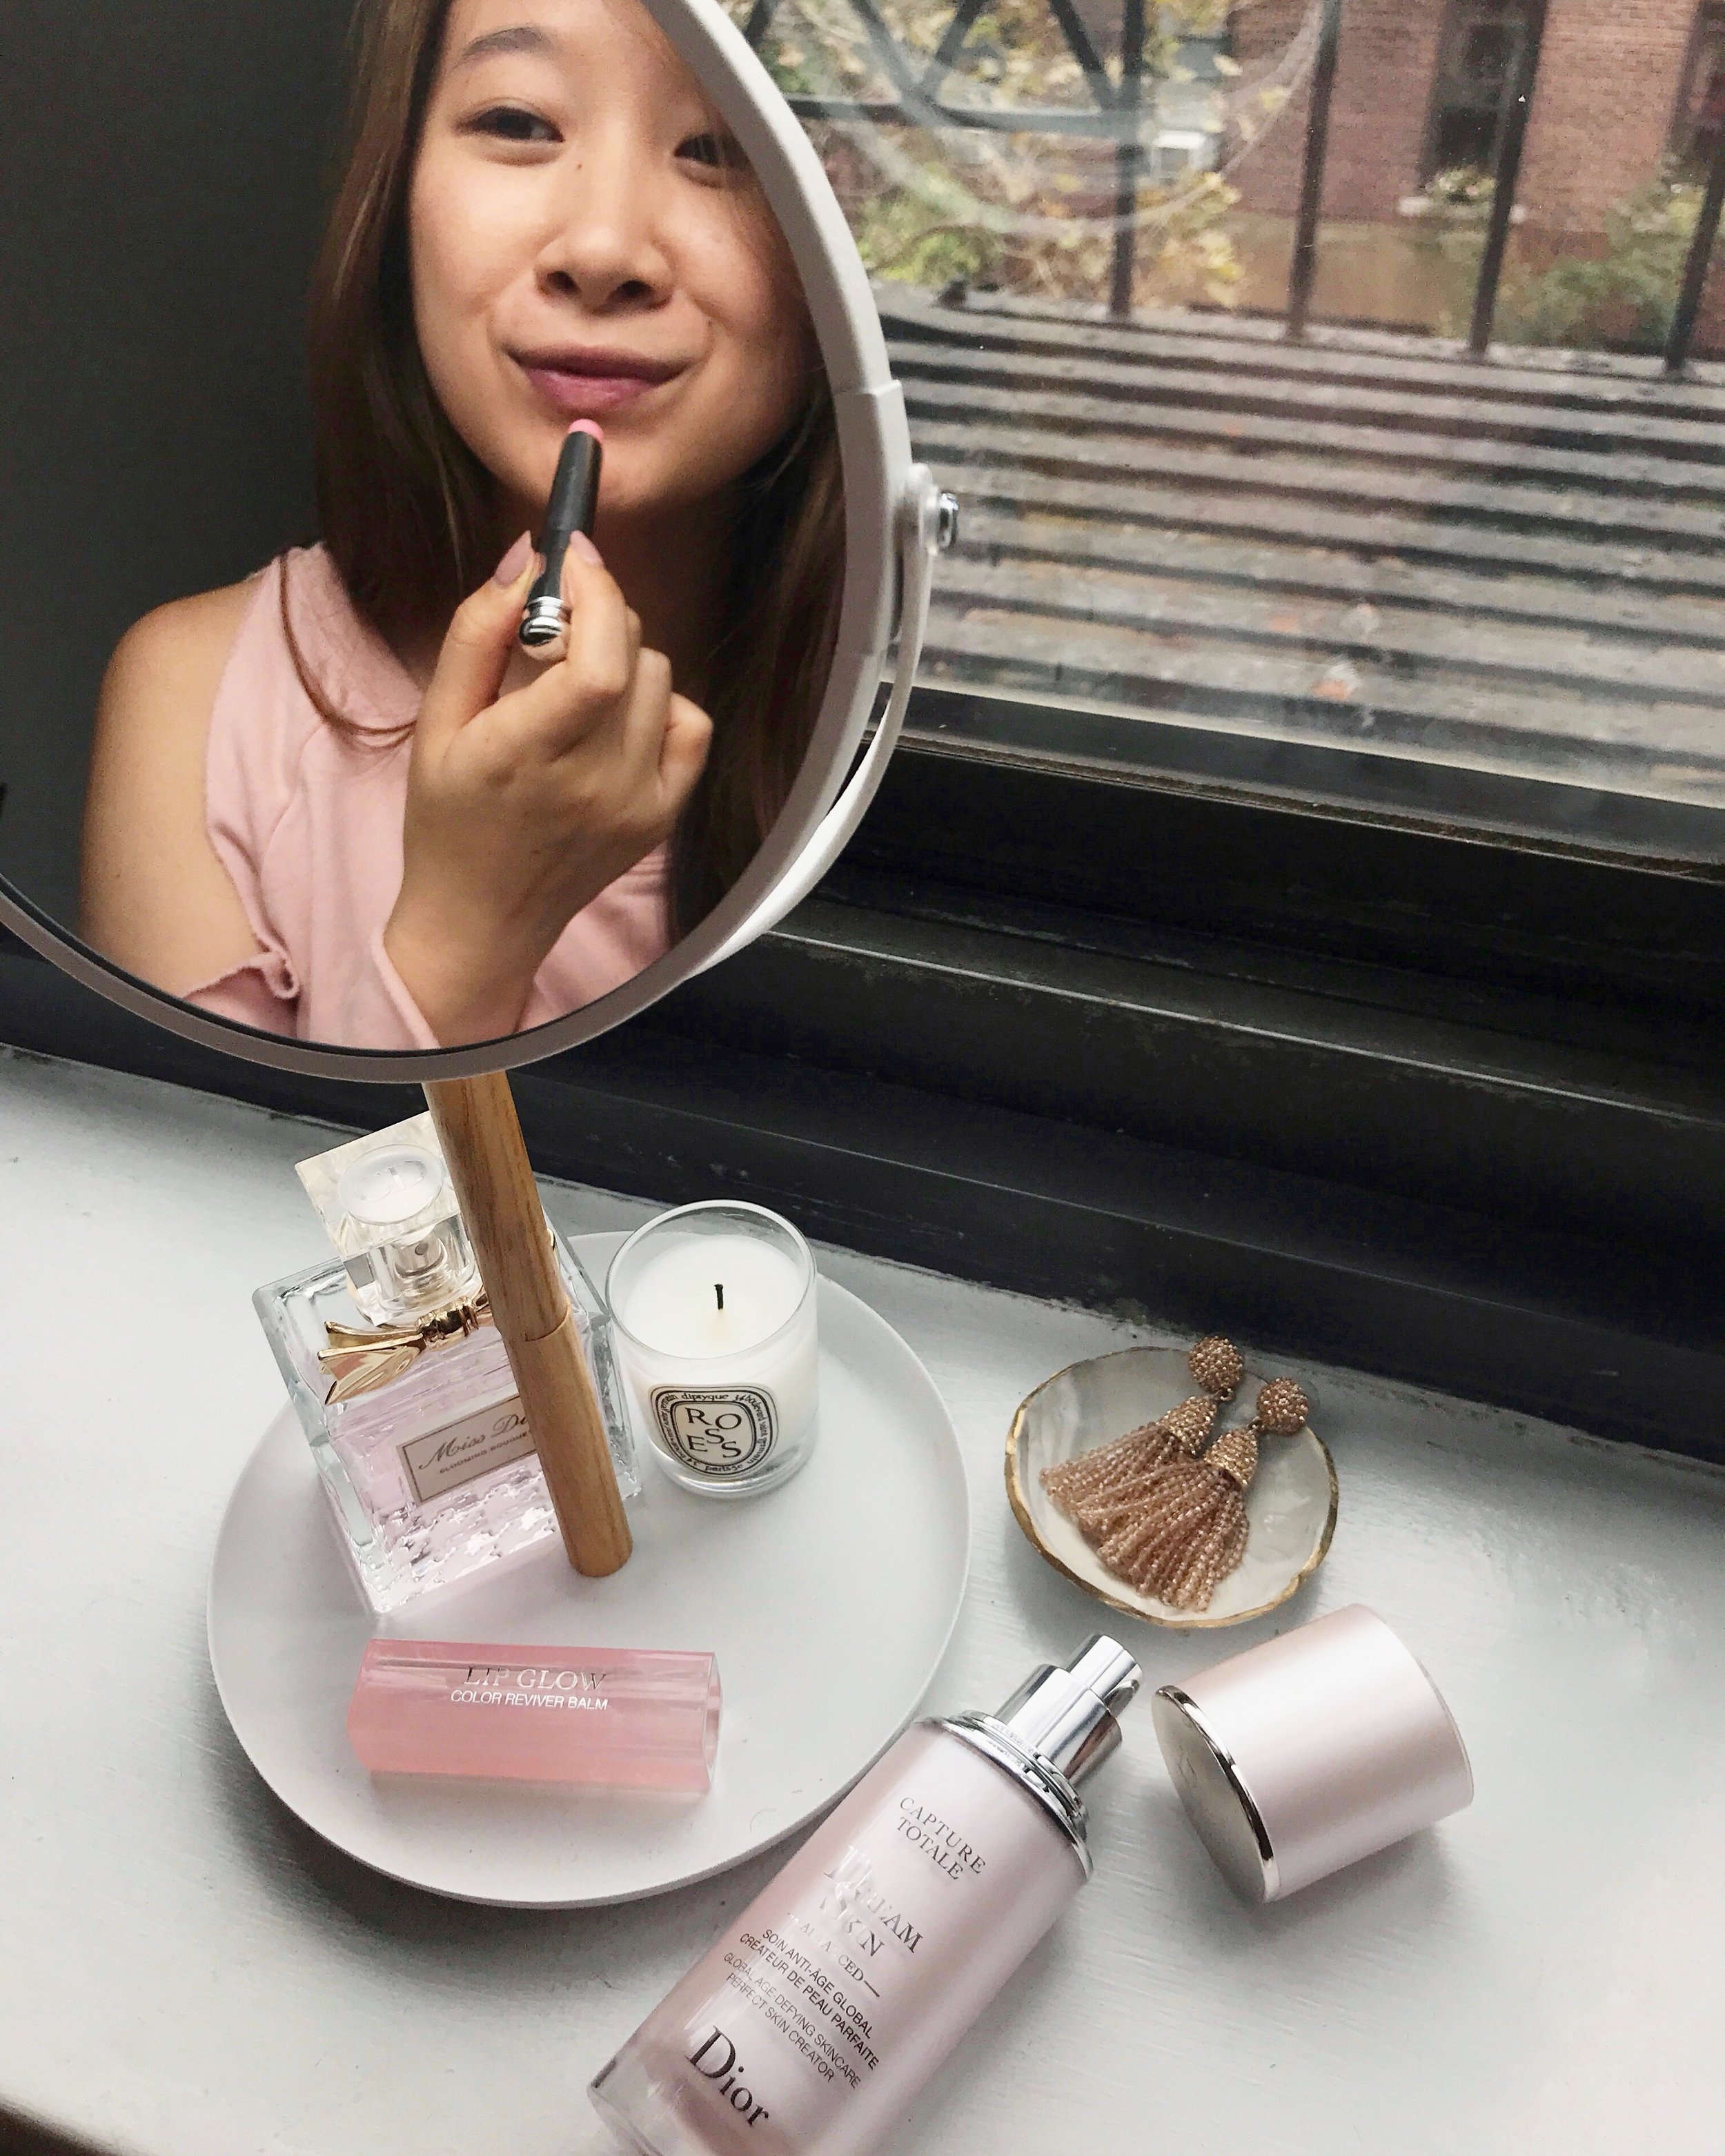 The Lip Glow lip balm by Dior keeps my lips moisturized throughout the day and gives me a healthy-looking lip color.